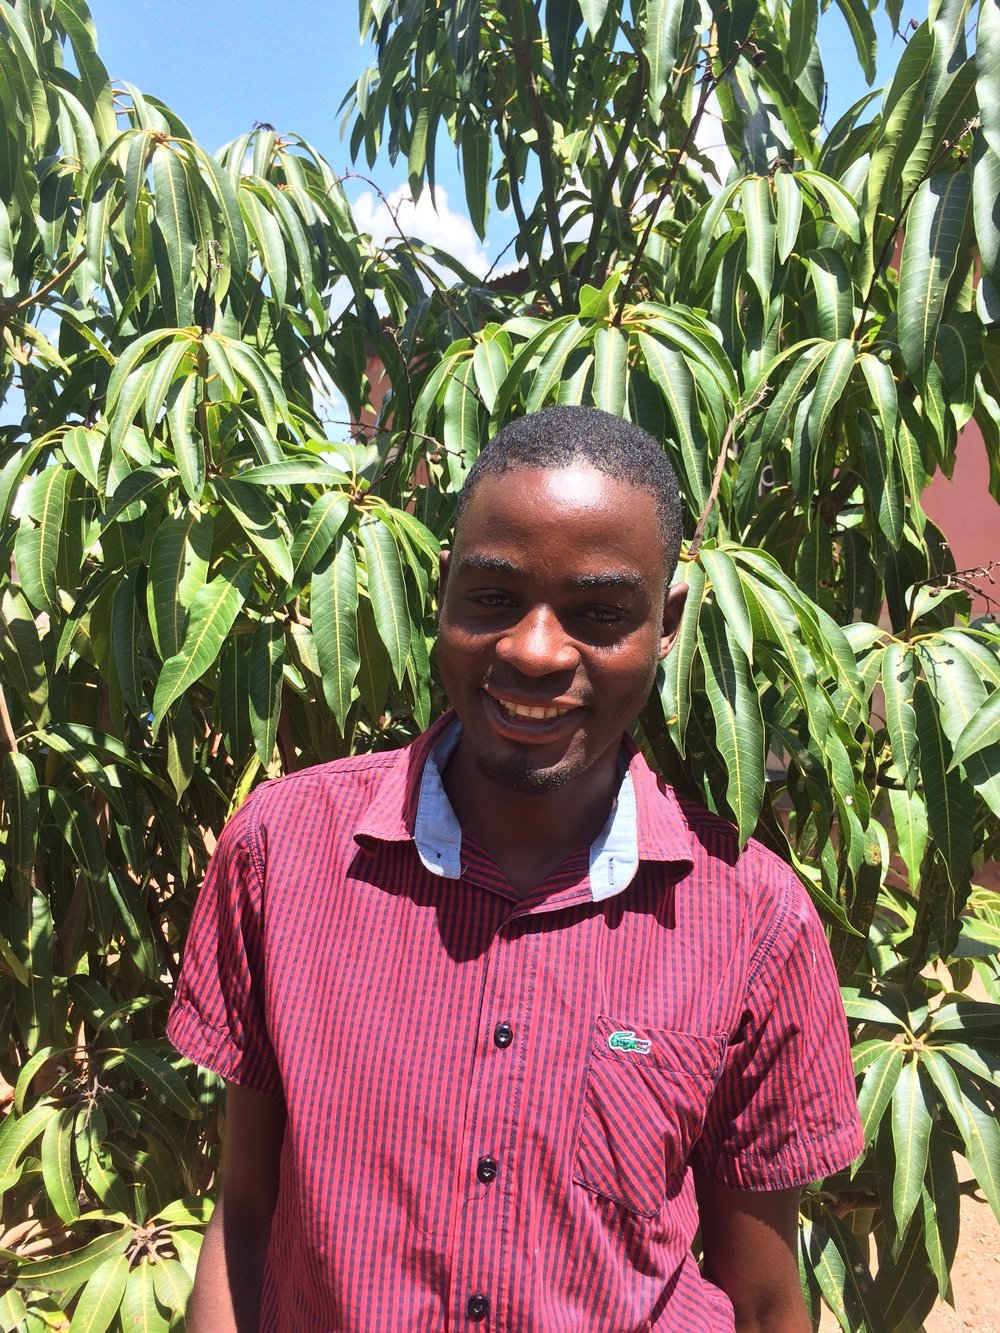 Jackson Siwo, Teacher Supervisor Petauke North   Jackson Siwo is a Teacher Supervisor at Petauke North and holds a Diploma in Early Childhood Education. He joined Impact Network in April 2015 as a Grade 1 teacher.  In 2016, he was promoted to Teacher in Charge at Zatose Community School, and in 2017, he began as a Teacher Supervisor for Petauke North.